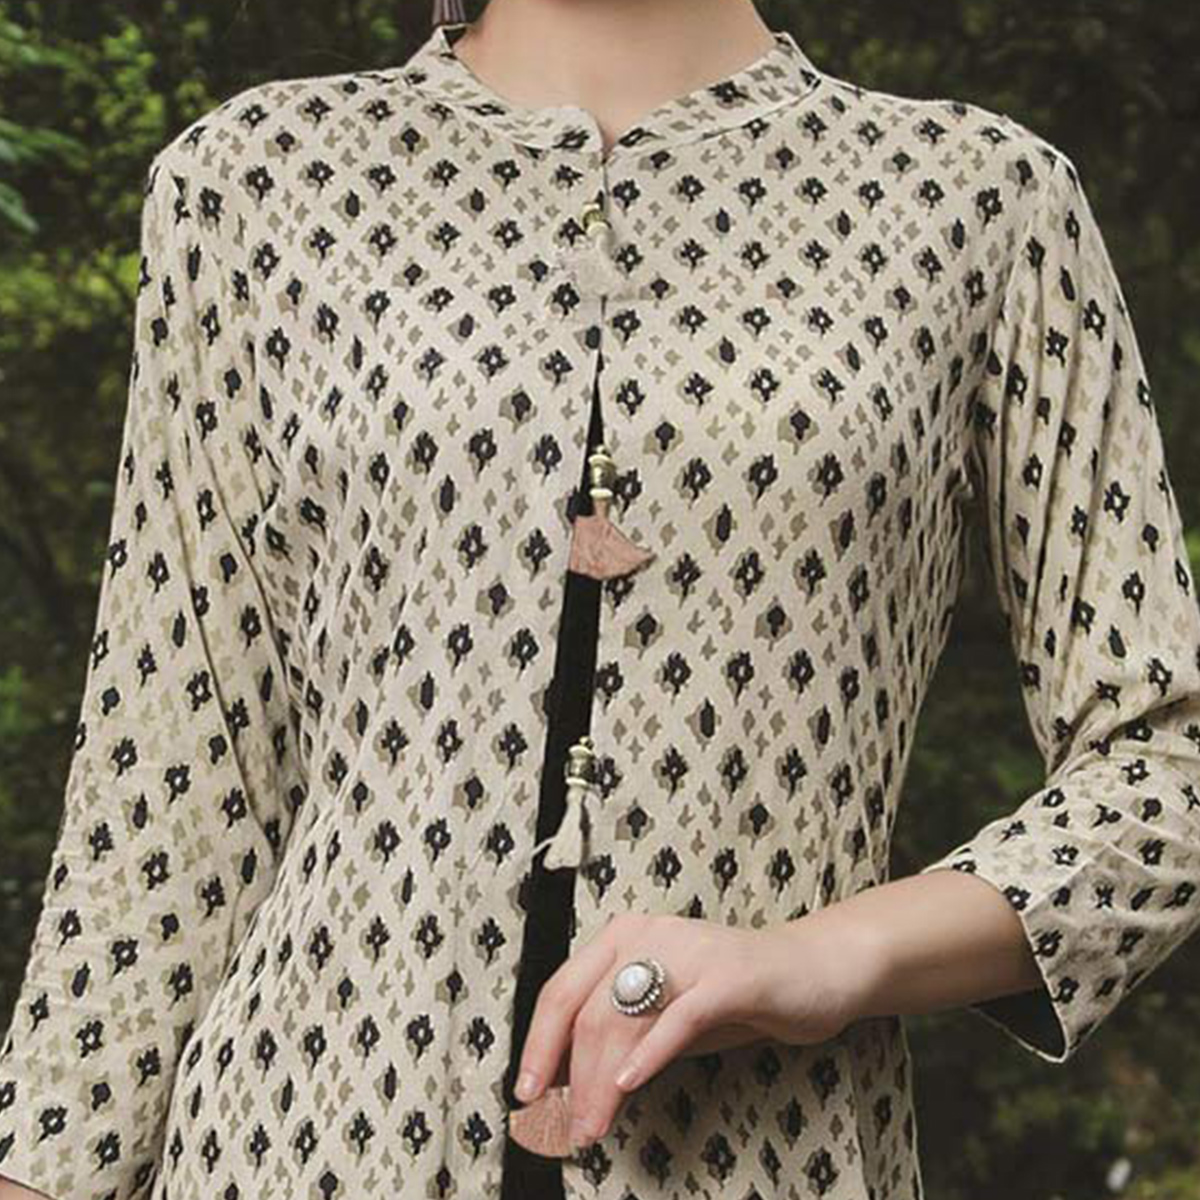 Appealing Off White-Black Colored Fancy Printed Cotton Kurti